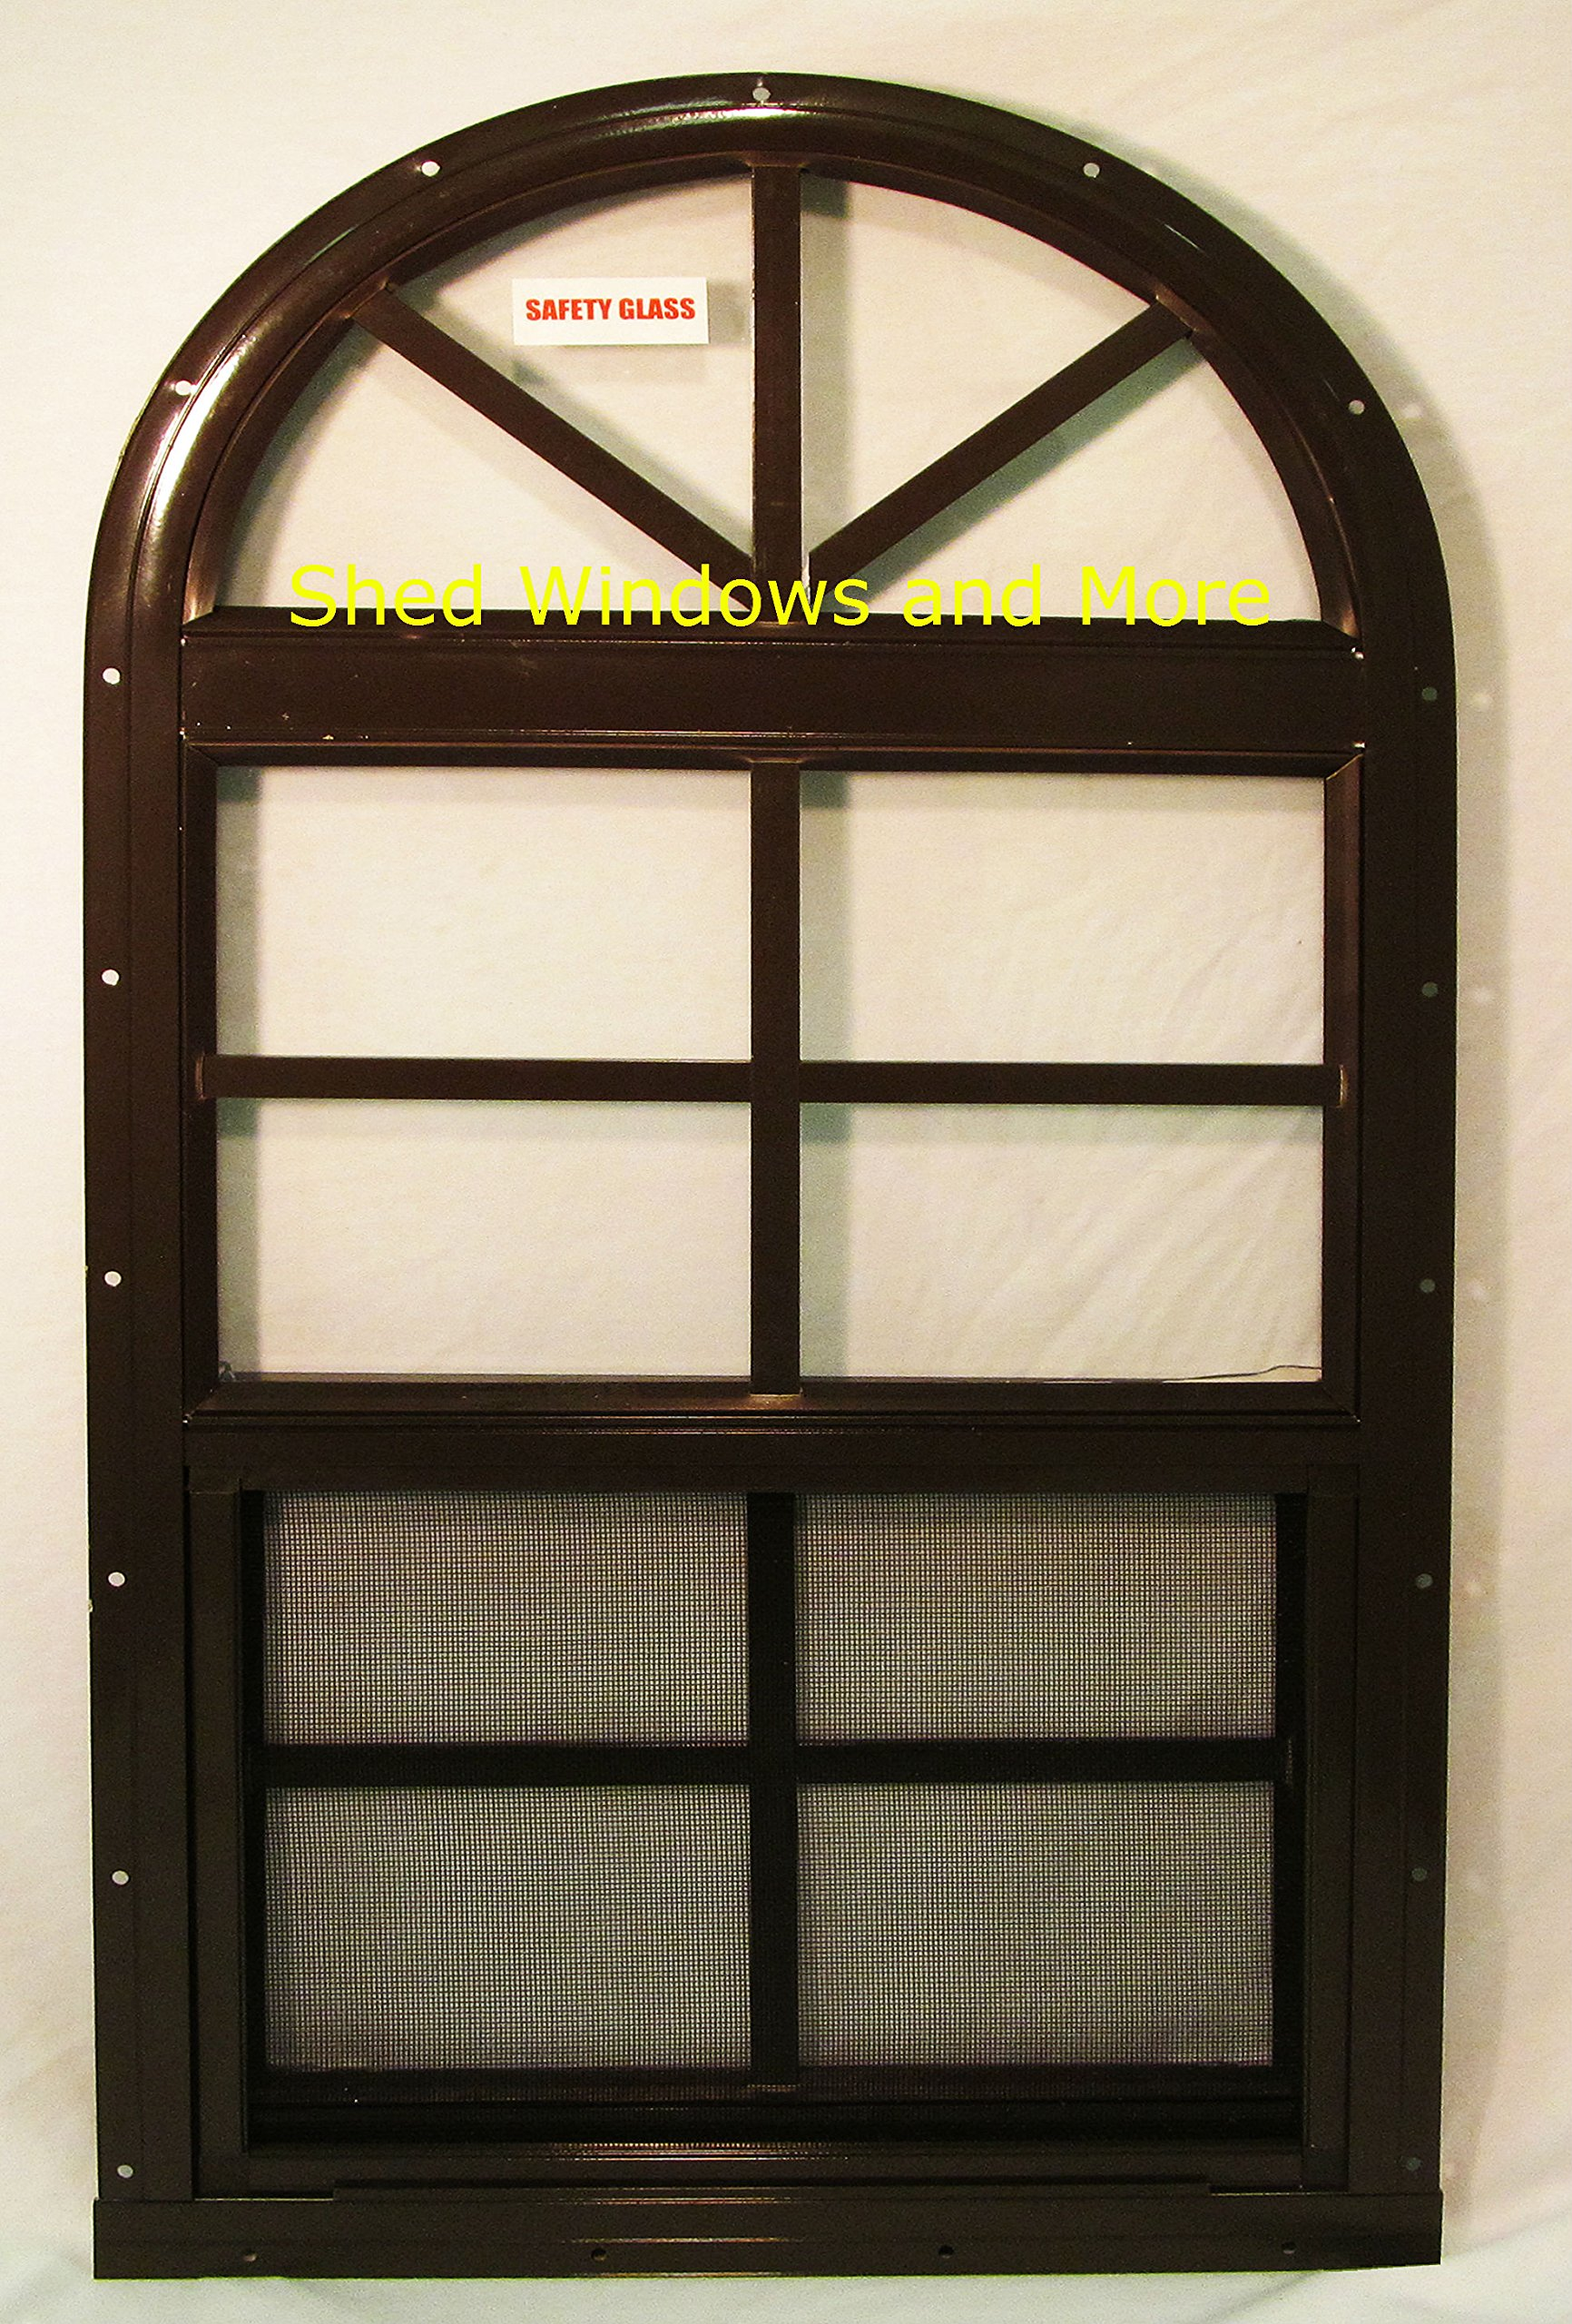 Arched Shed Playhouse Windows 14 X 28 Brown, Safety Glass Aluminum Frame